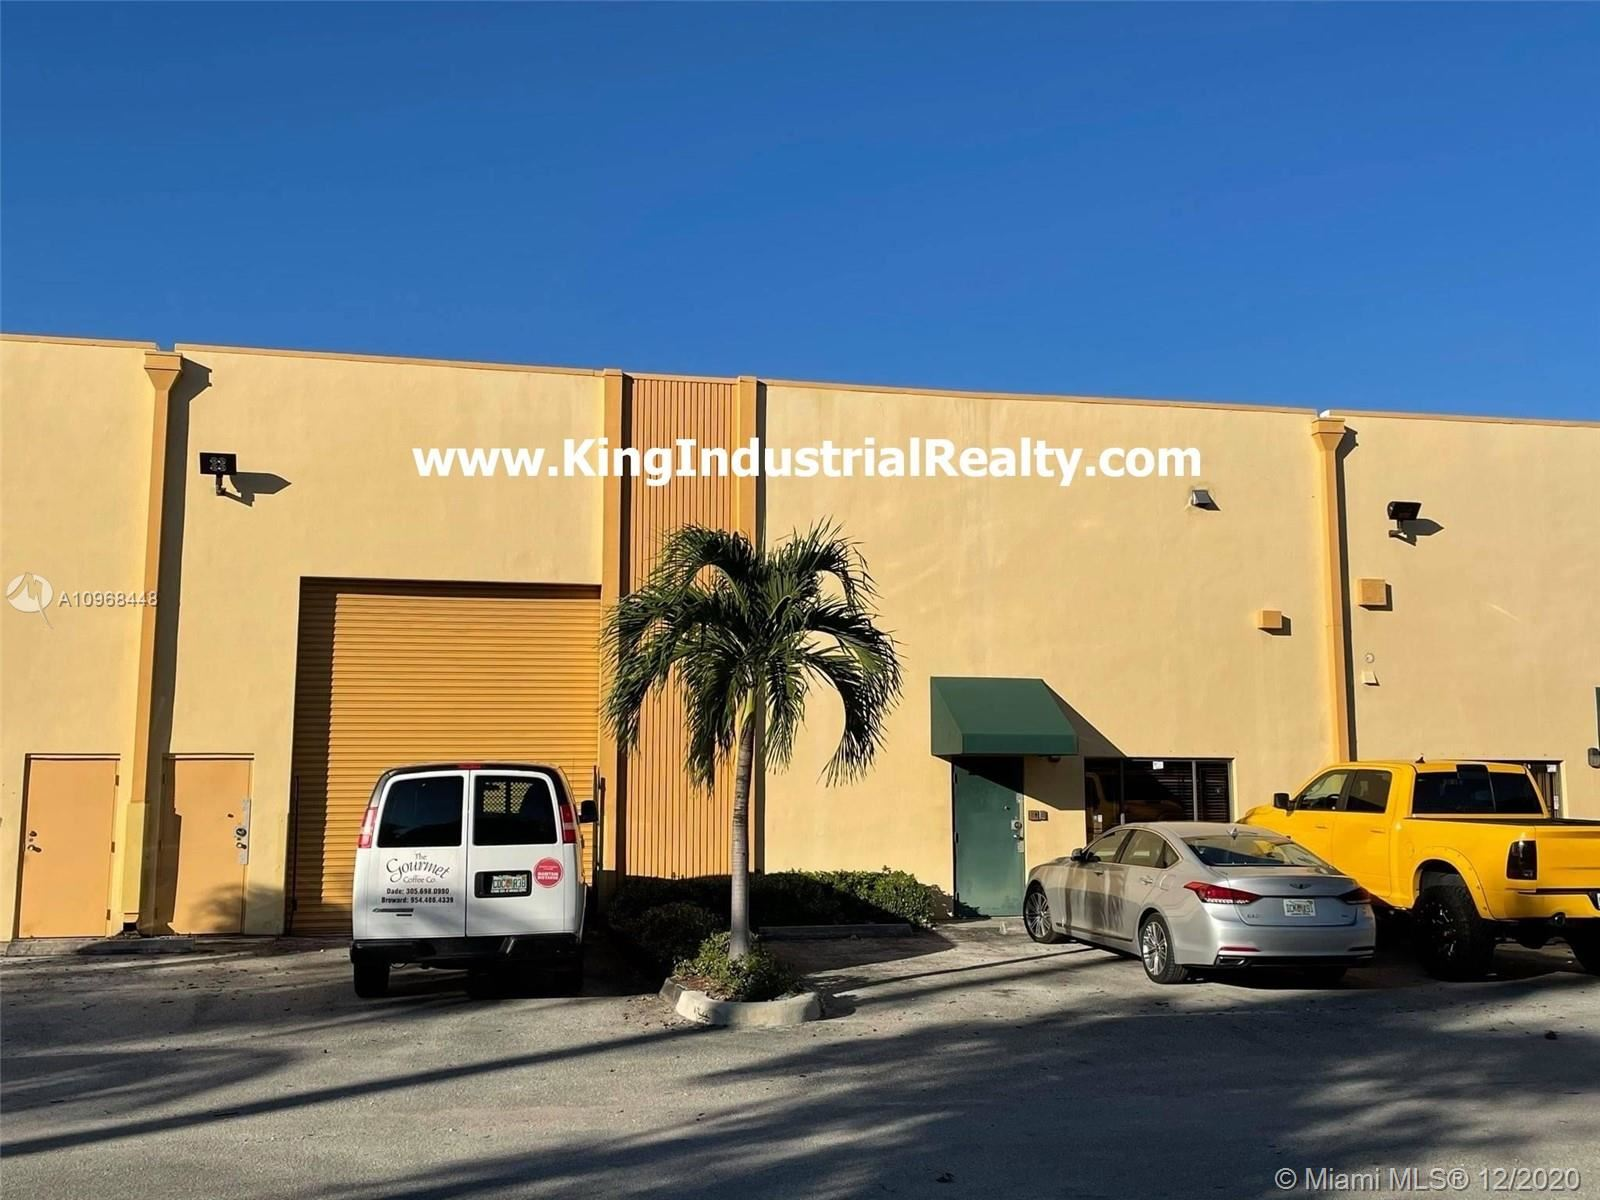 Dating solutions hialeah flag